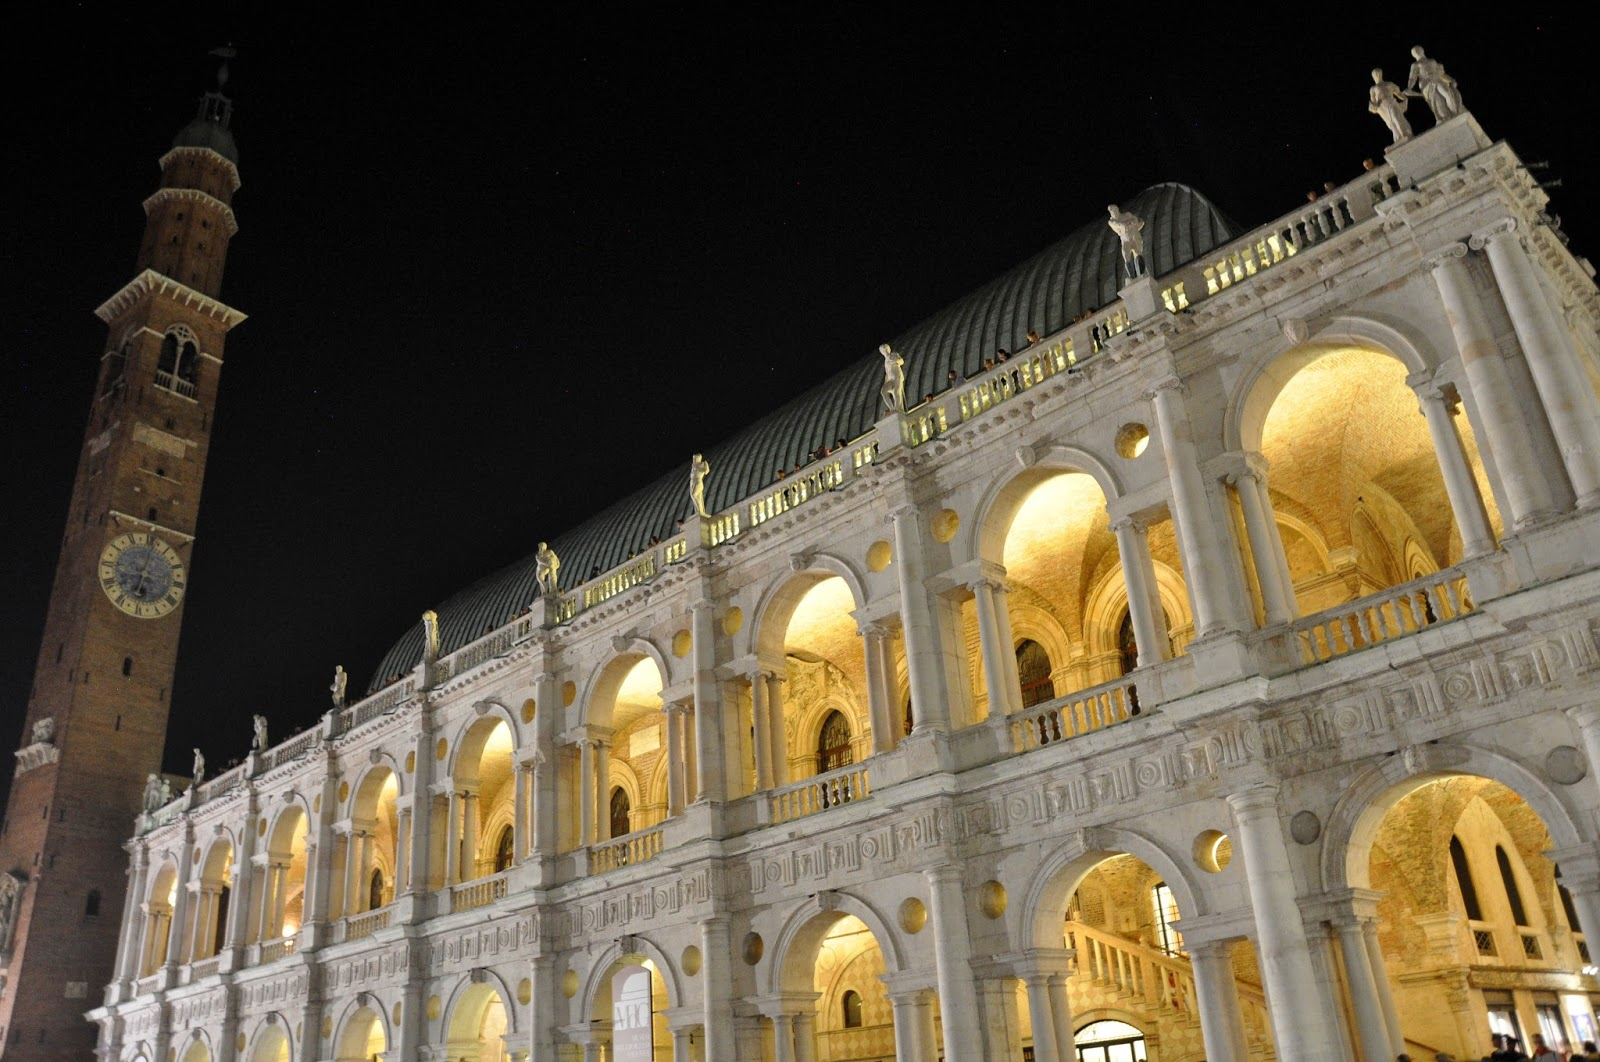 Palladio's Basilica illuminated at night, Vicenza, Italy